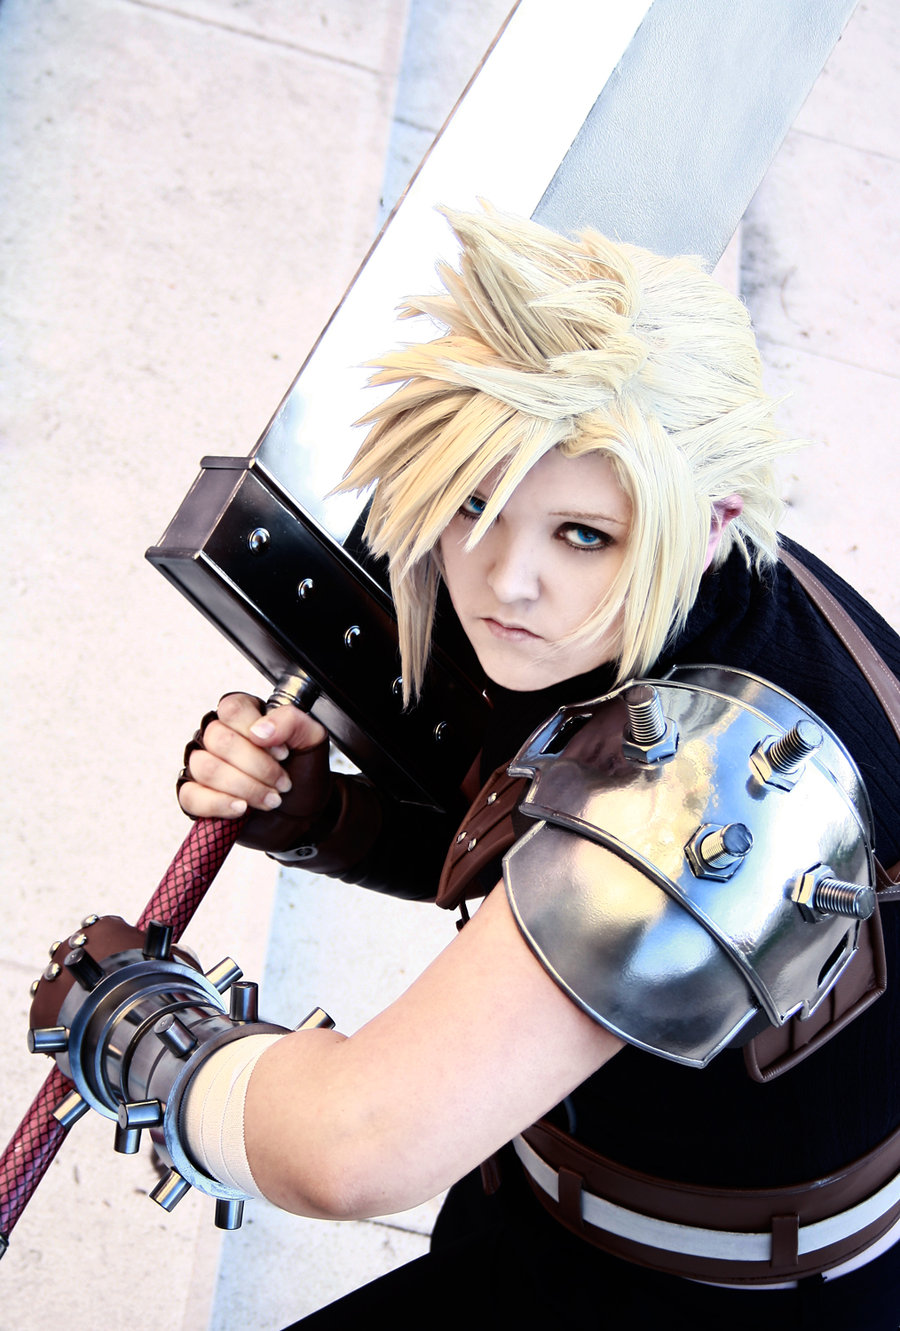 GoddessofValhalla is Cloud | Photo, Weapon, and Costume Help by: Shinkan-Seto